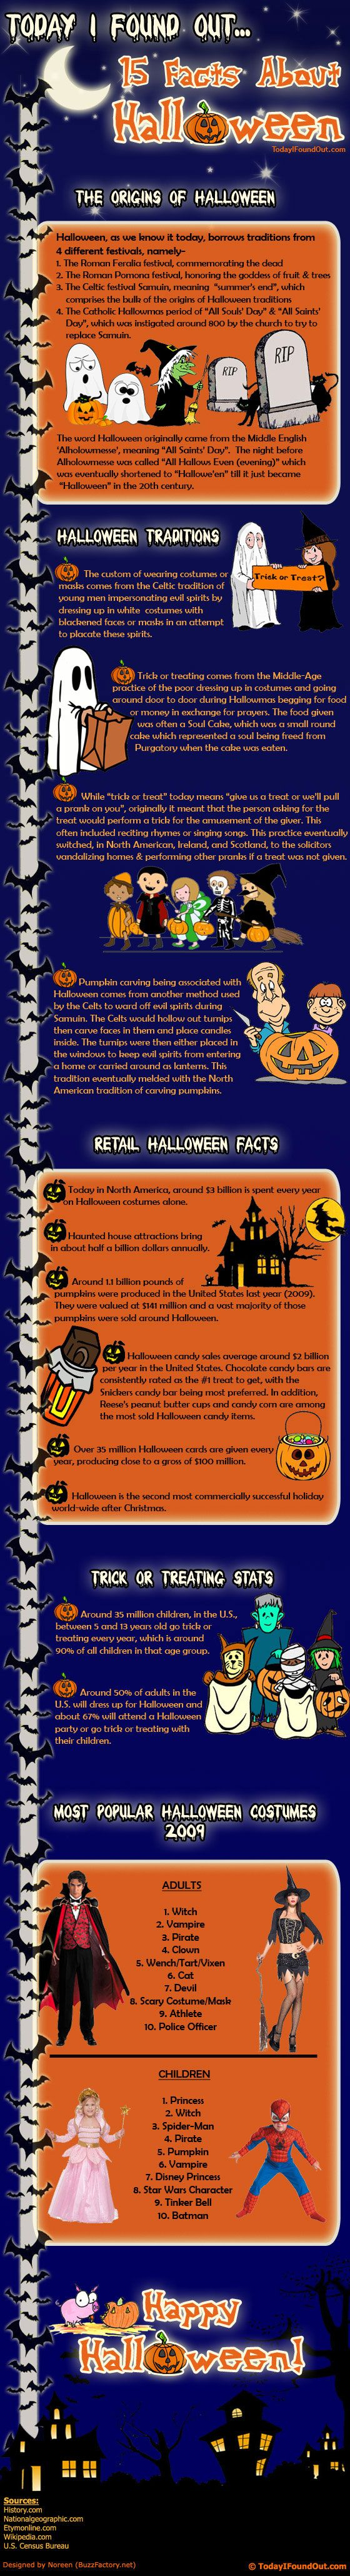 Halloween | Tipsographic | More Halloween tips at http://www.tipsographic.com/